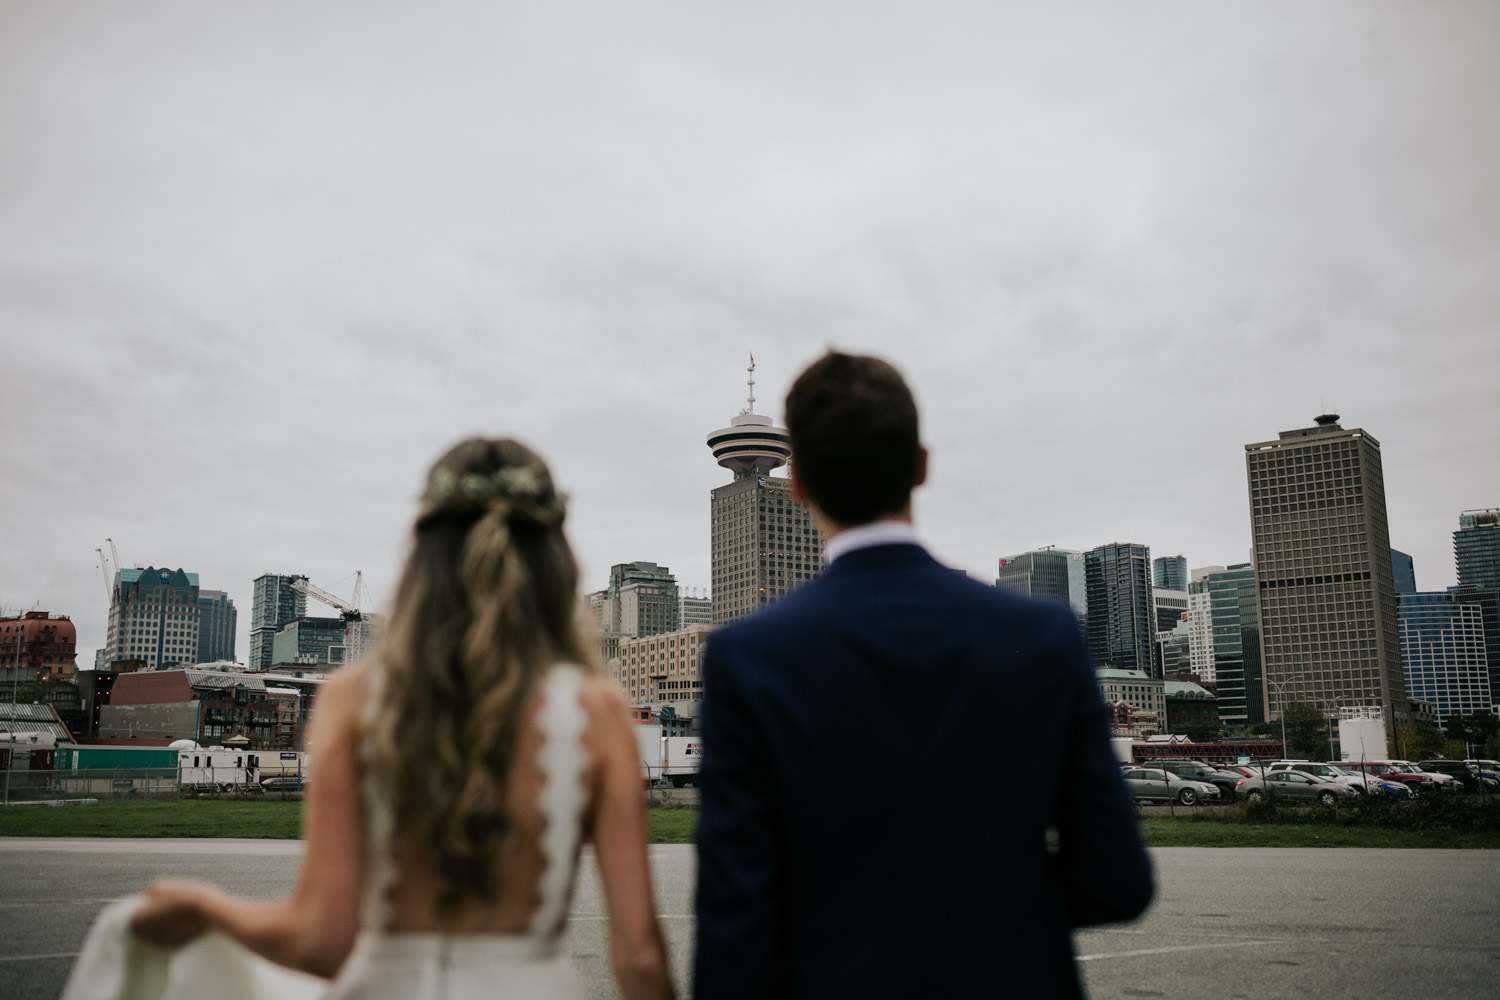 Wedding photo session taken at Crab Park in Vancouver with city skyline in the background